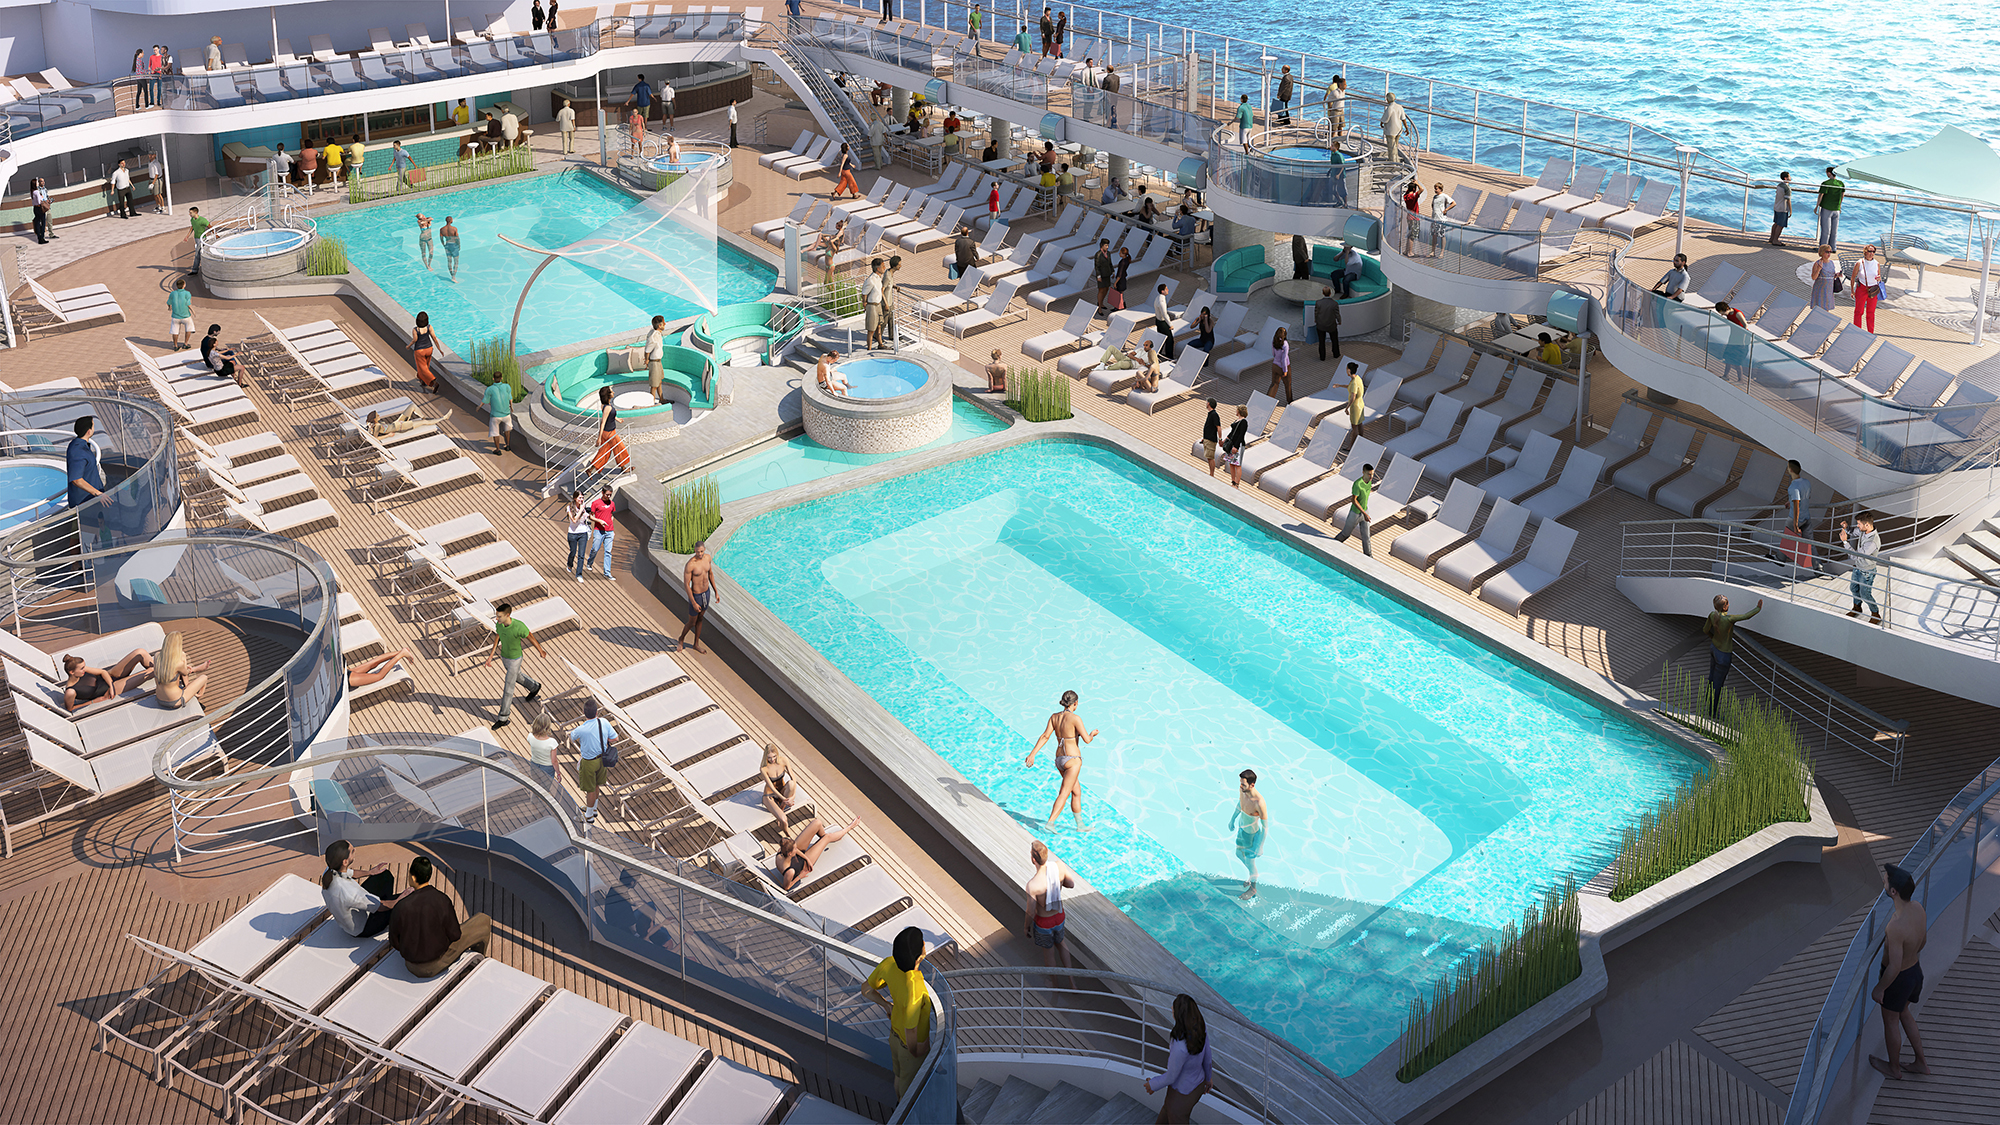 Sky Princess guests will enjoy two deep-tank top deck pools and more Jacuzzis than previous Royal class ships.